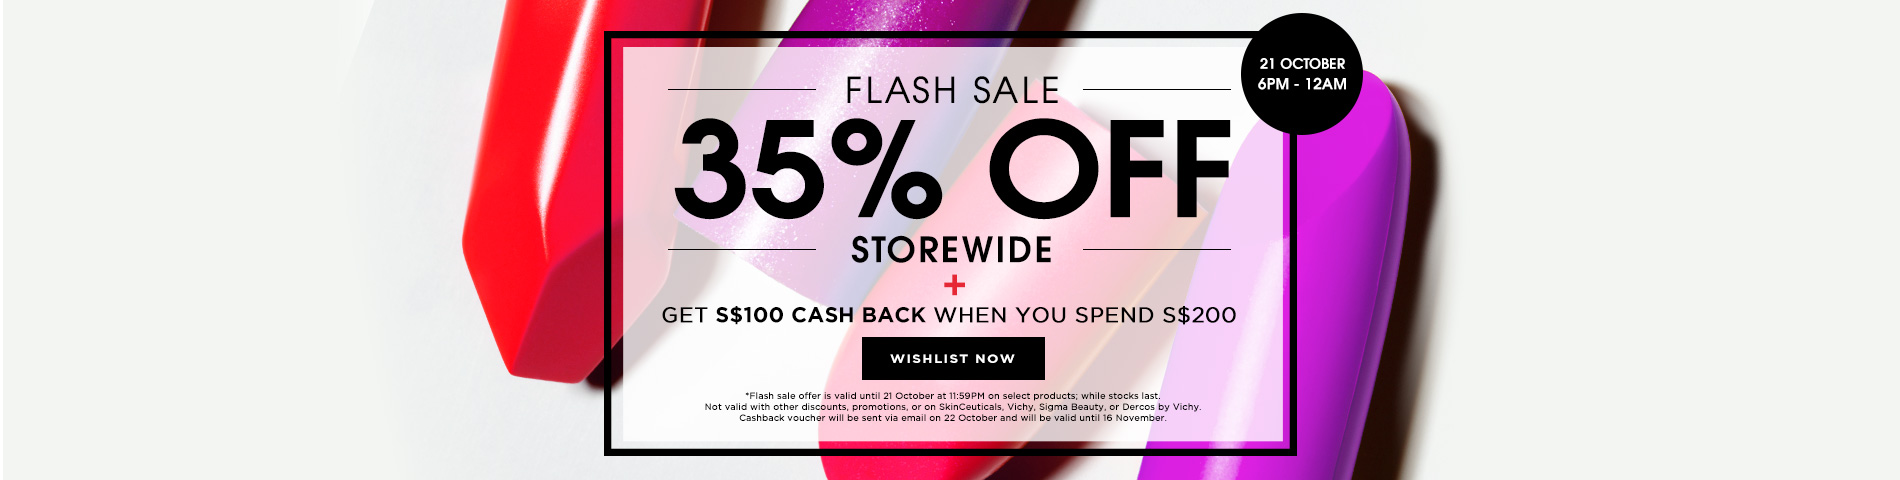 Wk43 14 35flashsale bb